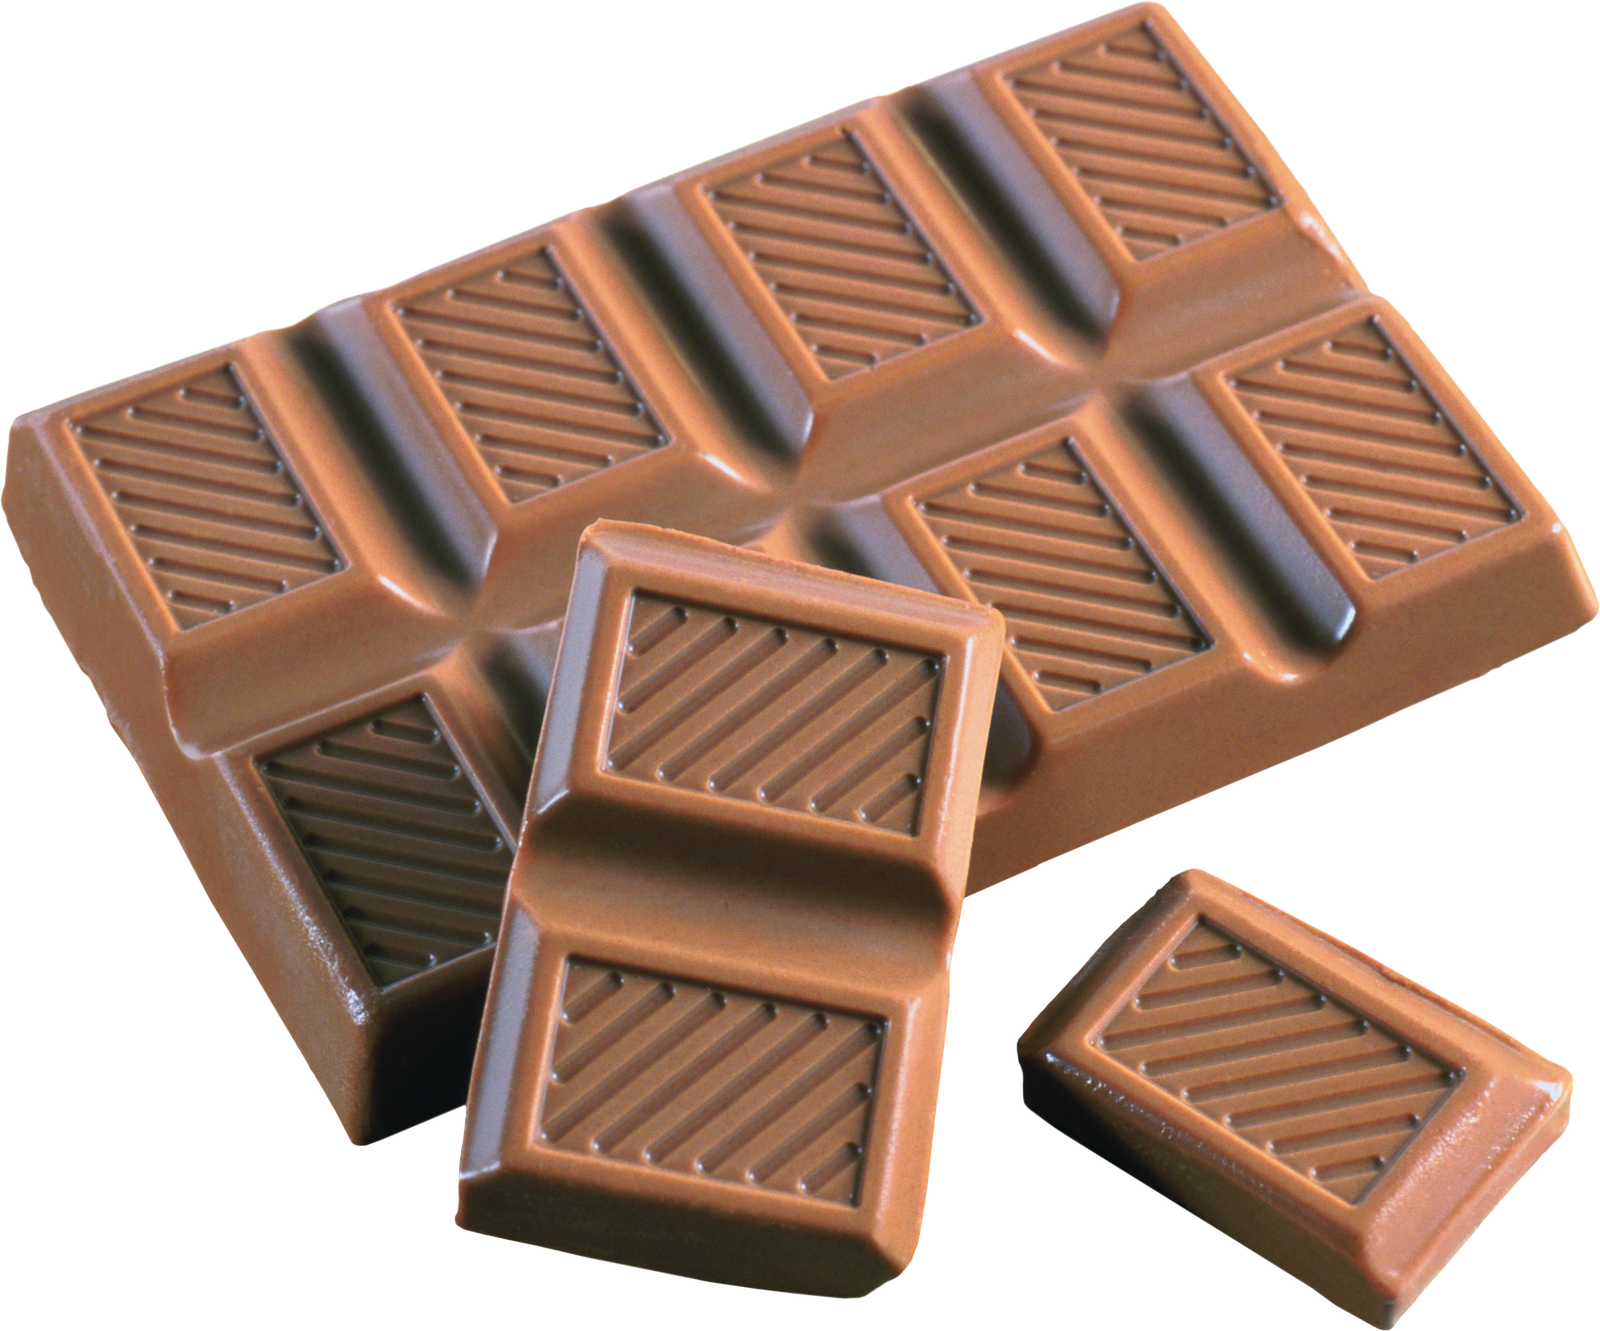 Chocolate Bar PNG Image - Ambrozijntje PNG